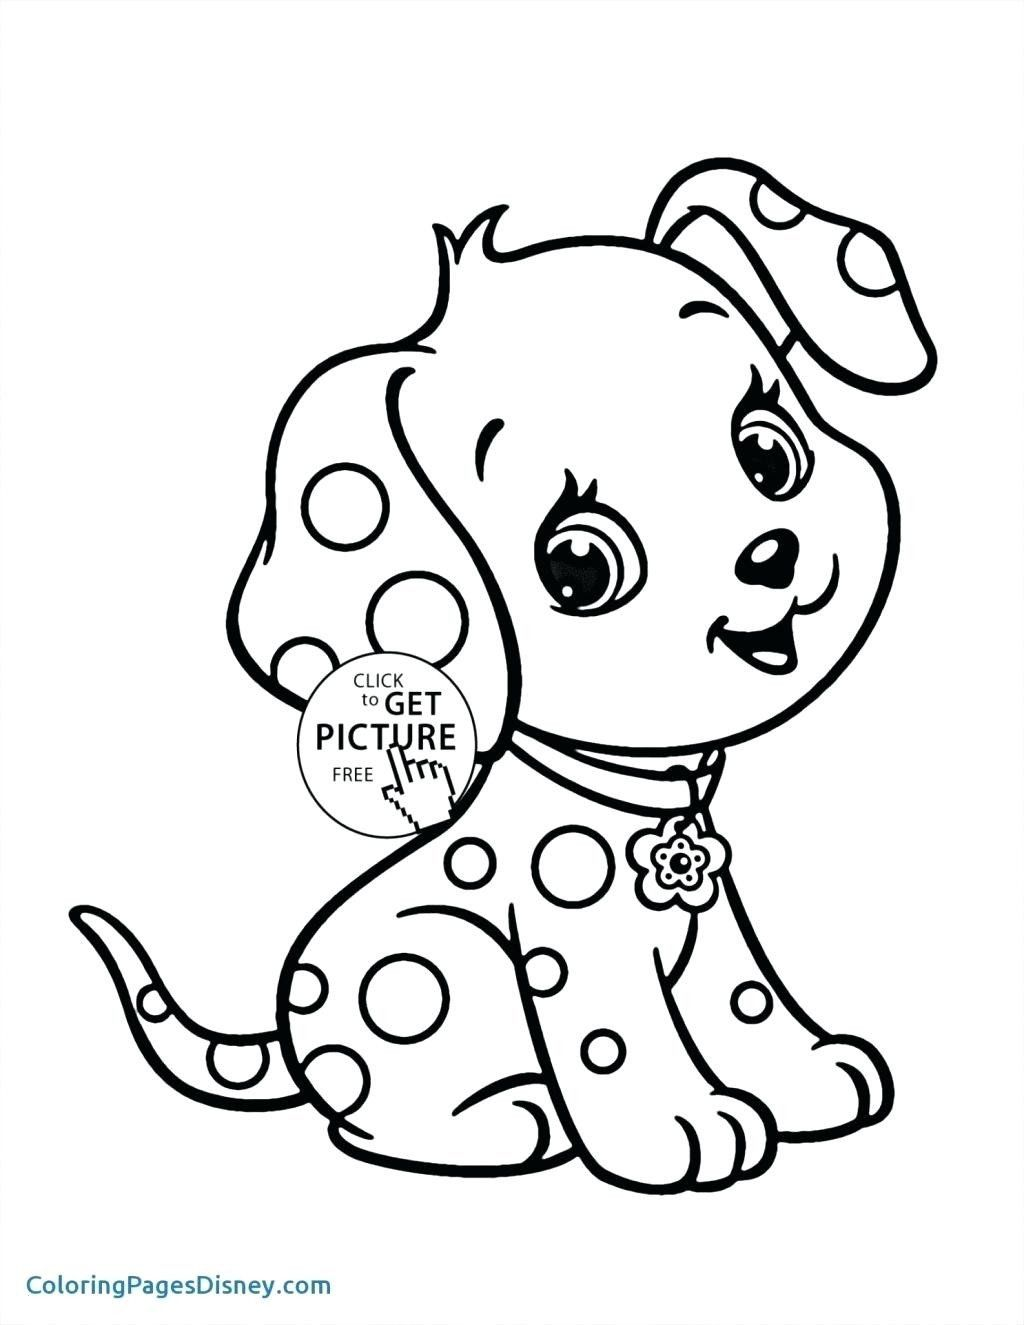 Candy Corn Coloring Page New Coloring Page Candy Chamberprint Unicorn Coloring Pages Disney Princess Coloring Pages Puppy Coloring Pages